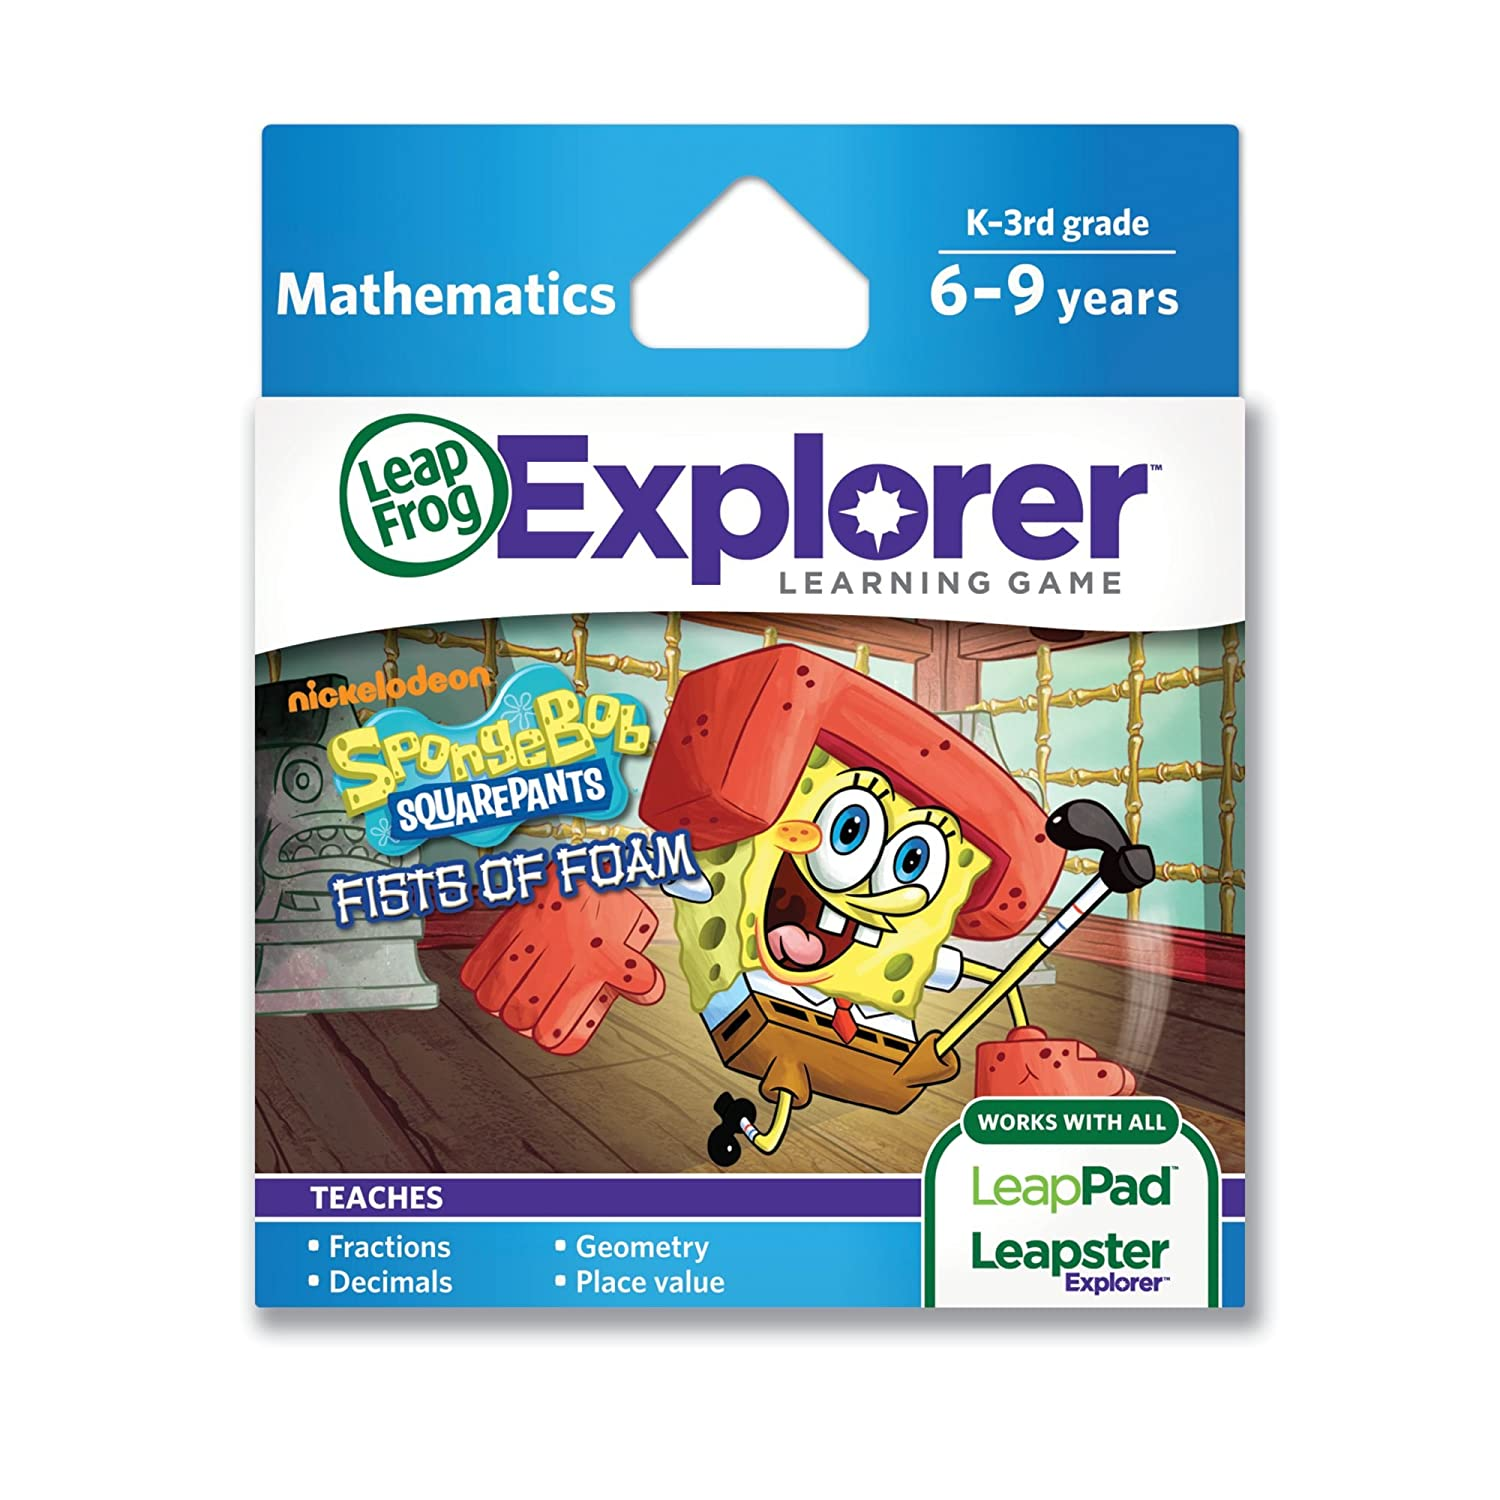 LeapFrog SpongeBob SquarePants Fists of Today's Indefinitely only work Learning Foam Game